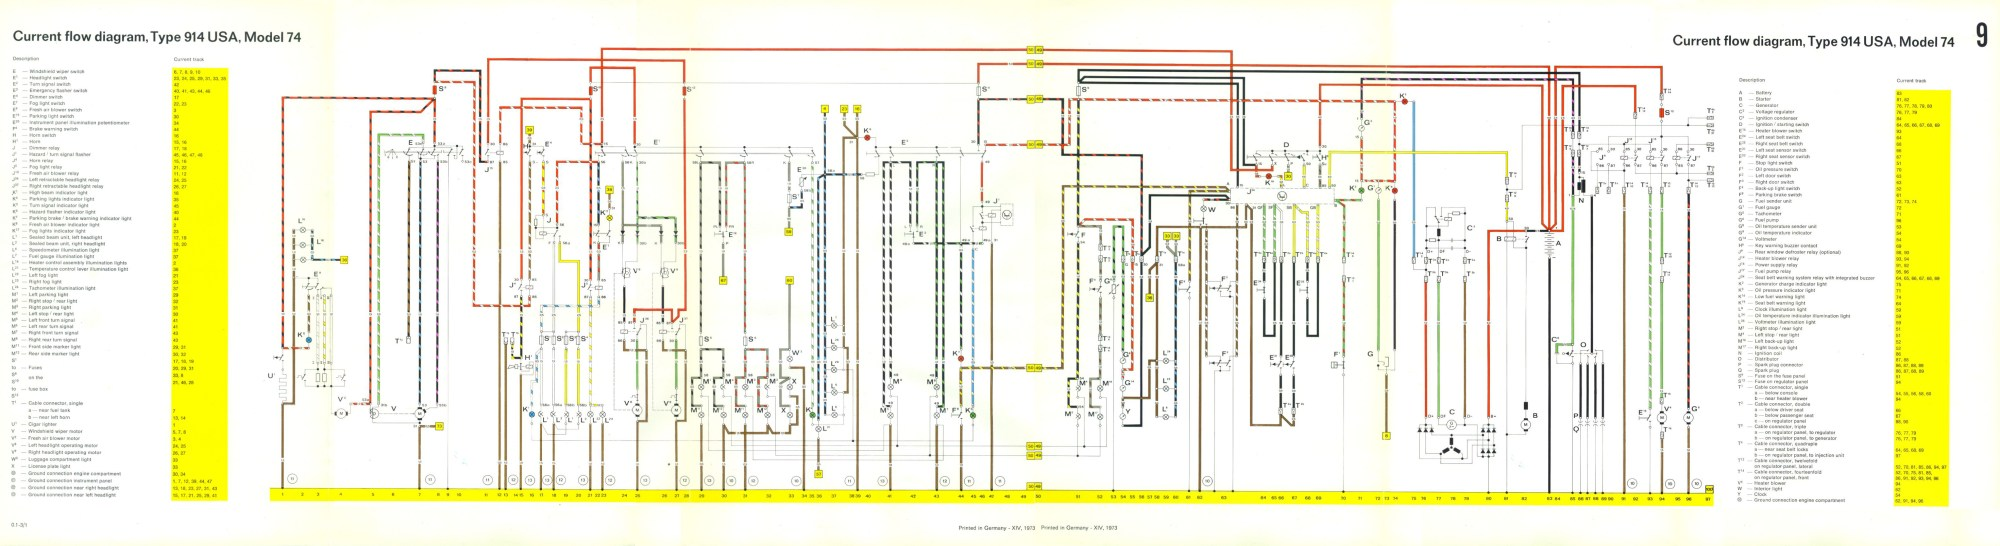 hight resolution of need wiring diagram for odometer img http www 914world com bbs2 uploads offsite